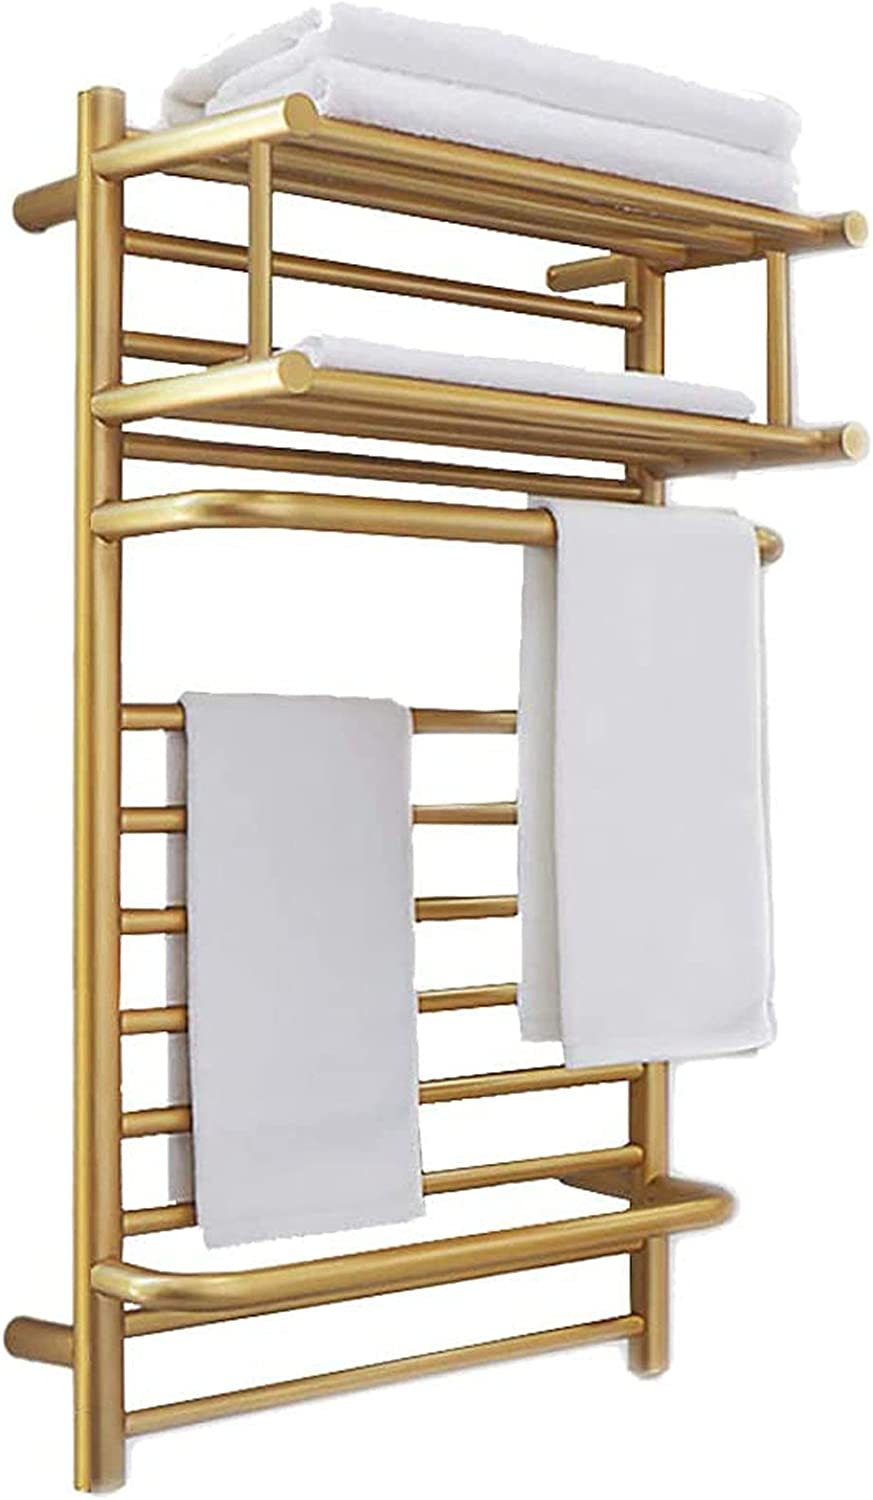 Electric Towel Rack Large-scale sale Max 85% OFF Wall Heated Mounted 30